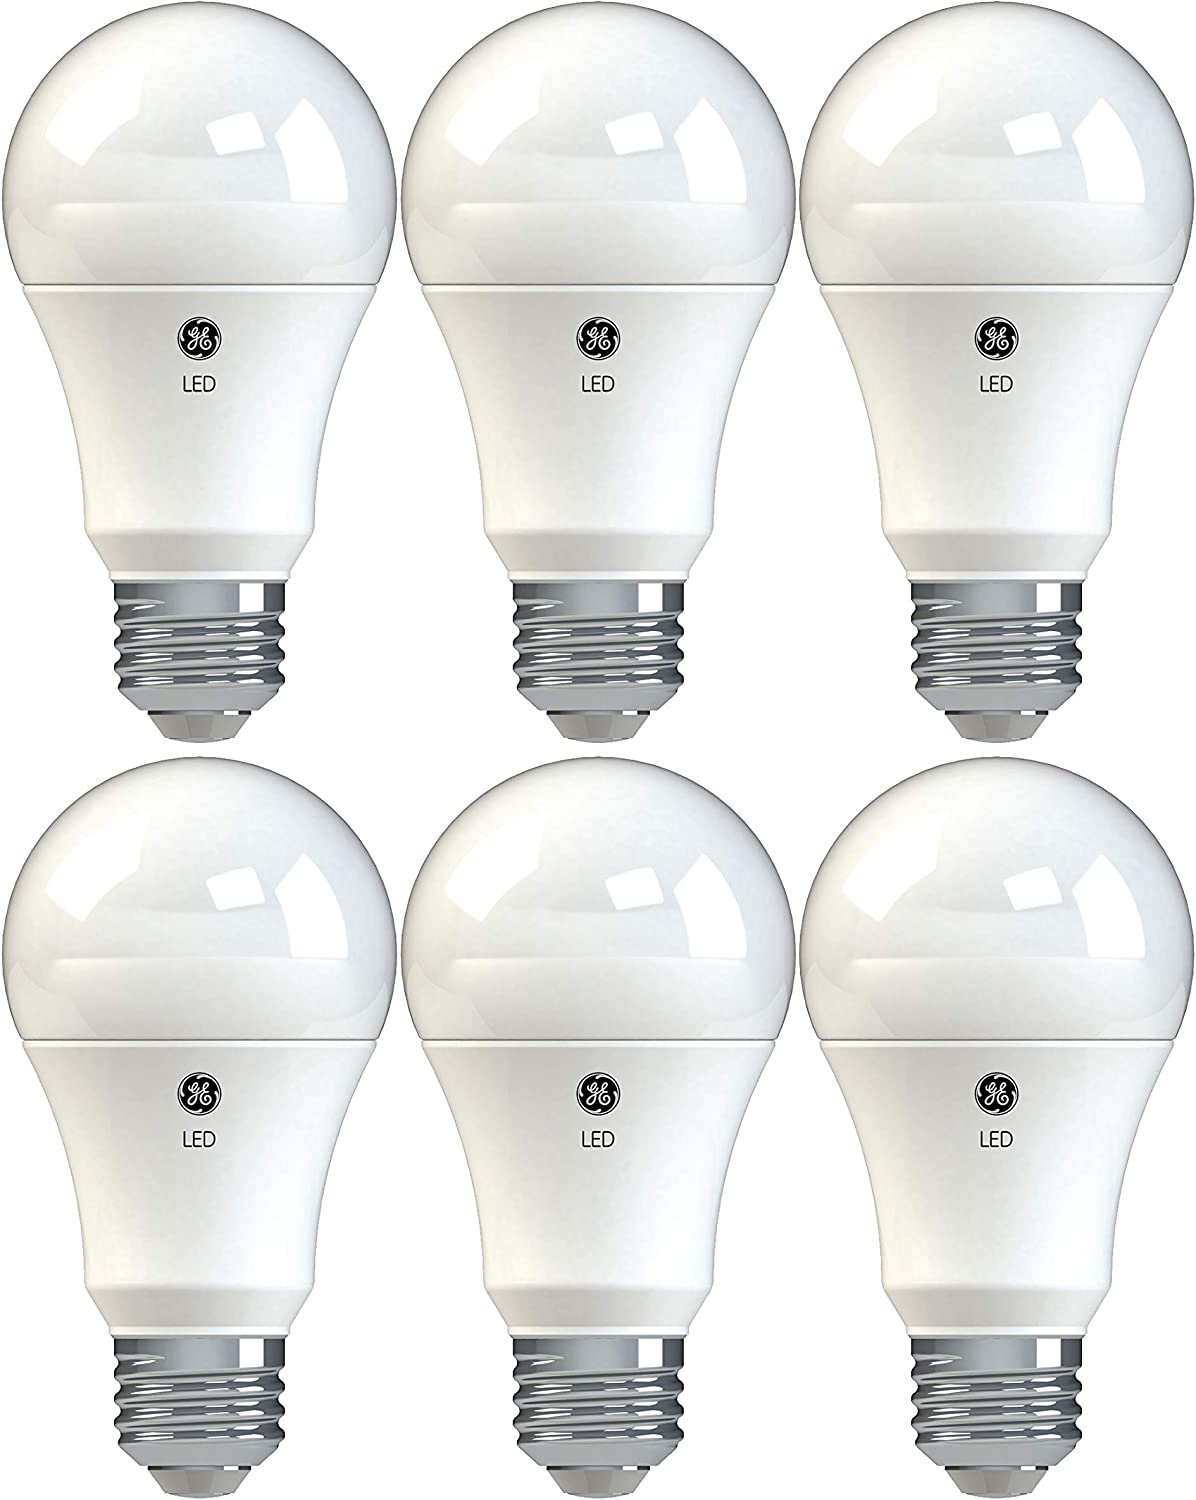 GE Lighting 99215 Dimmable Bulbs 10 (60-Watt-Replacement), 800-Lumen, Medium Base A19 General Purpose LED, 6-Pack, Soft White, 6